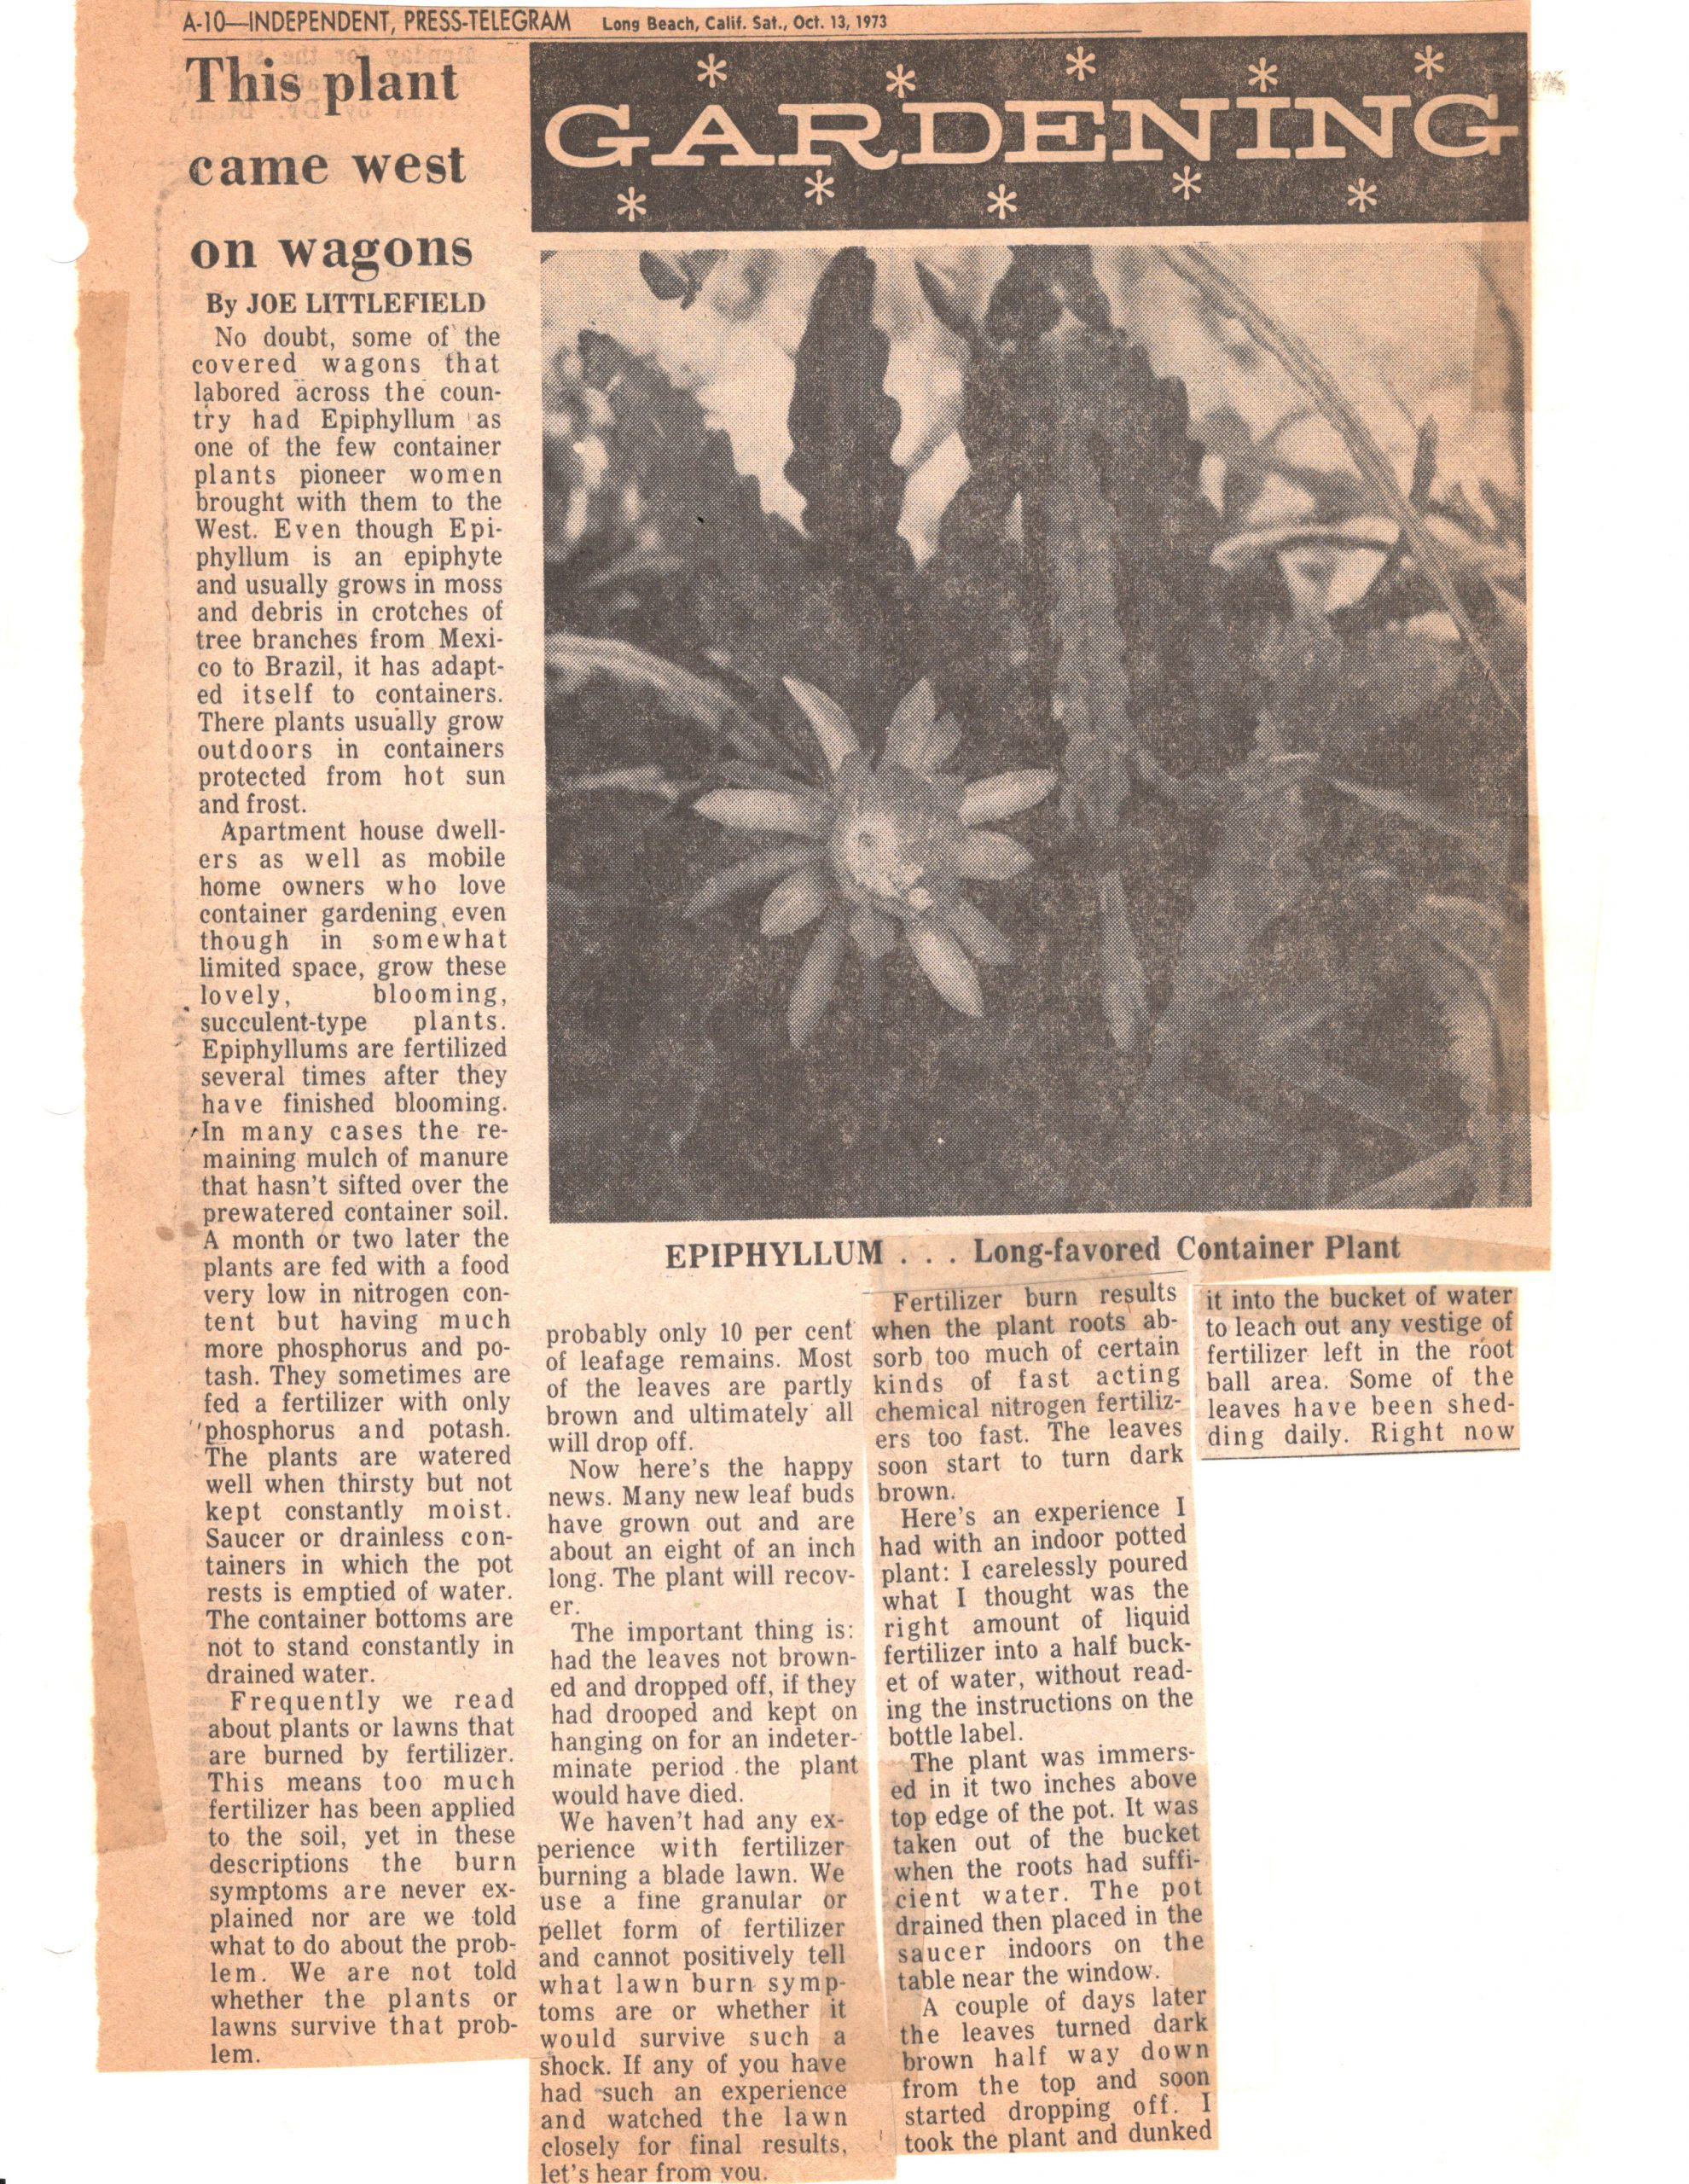 SCCSS-Cuttings-1973-10-13